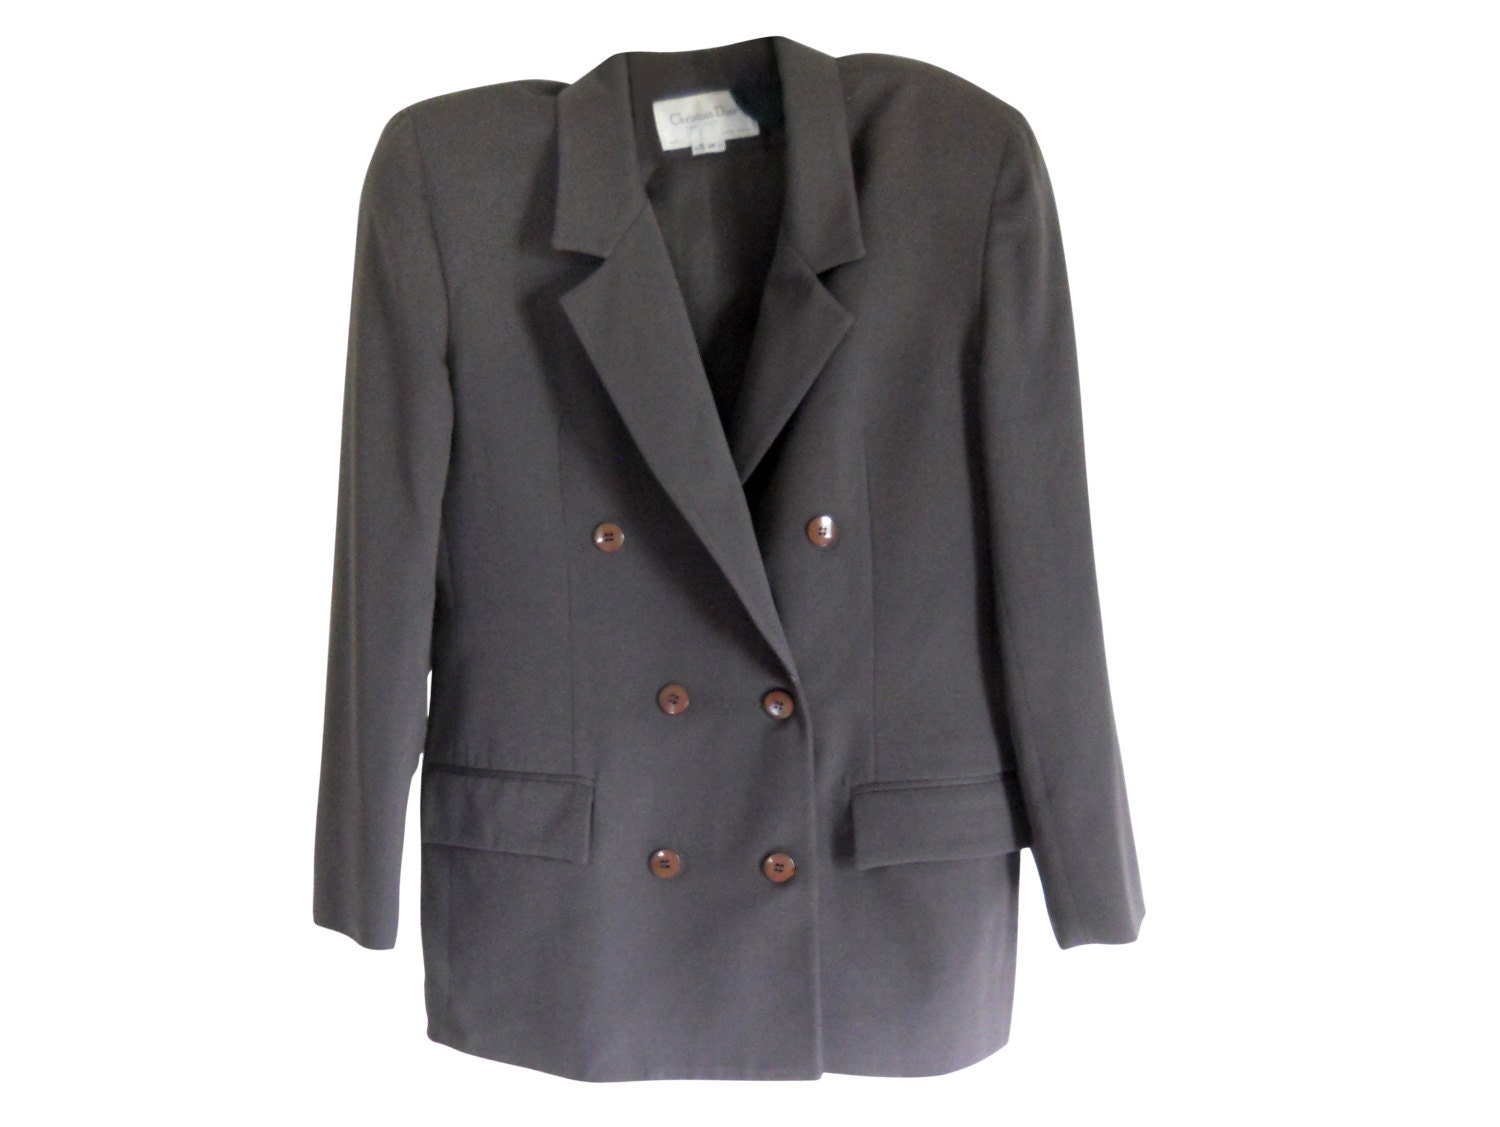 You searched for: taupe blazer! Etsy is the home to thousands of handmade, vintage, and one-of-a-kind products and gifts related to your search. No matter what you're looking for or where you are in the world, our global marketplace of sellers can help you find unique and affordable options. Let's get started!